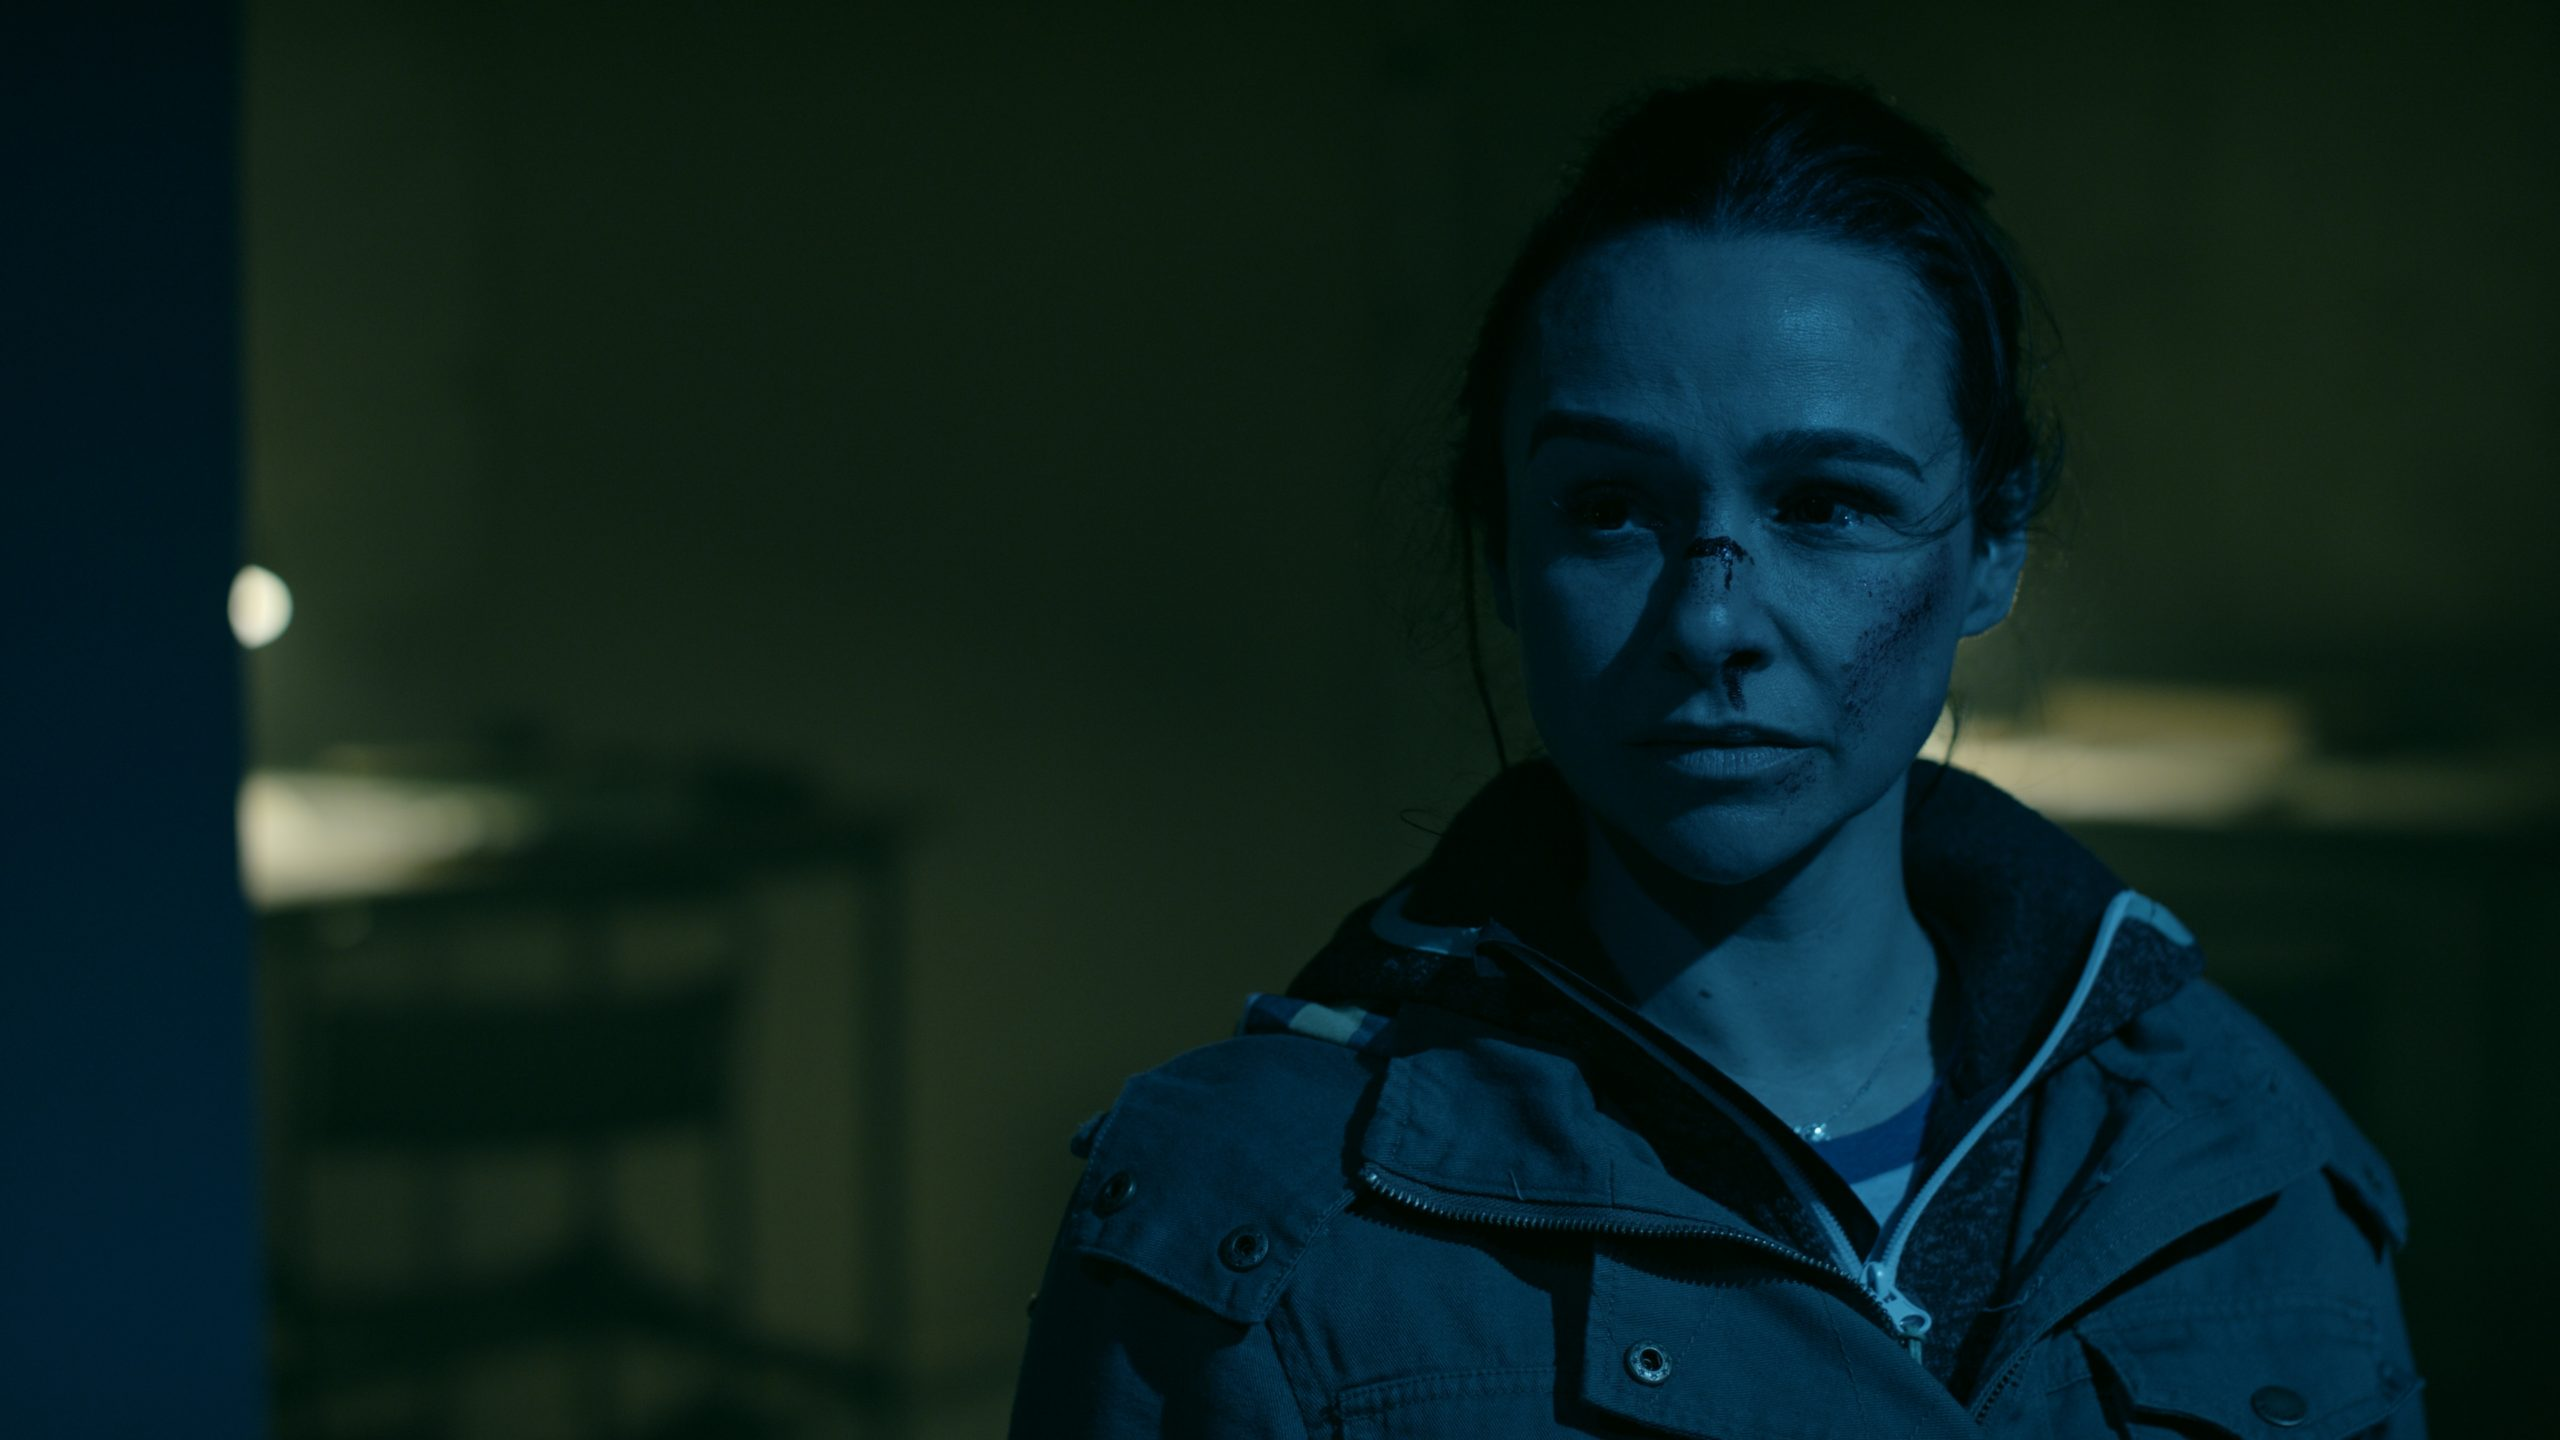 Danielle Harris Faces Off Against Another Masked Slasher in 'Redwood Massacre: Annihilation' [Trailer] - Bloody Disgusting